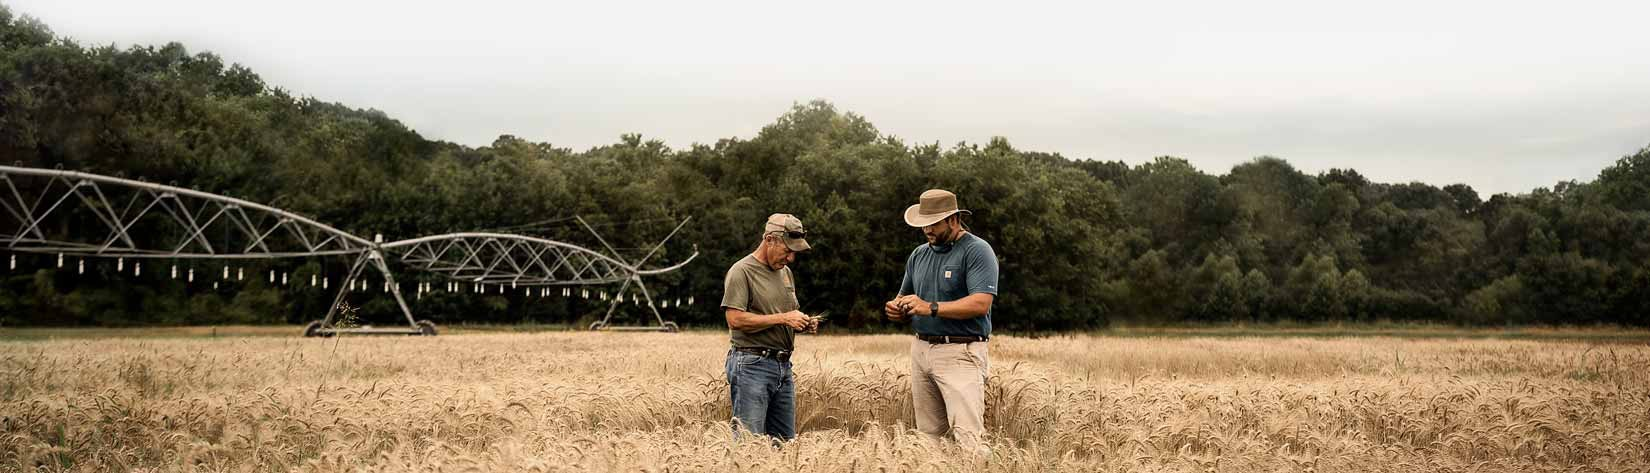 Two farmers standing in a field in front of an irrigation system